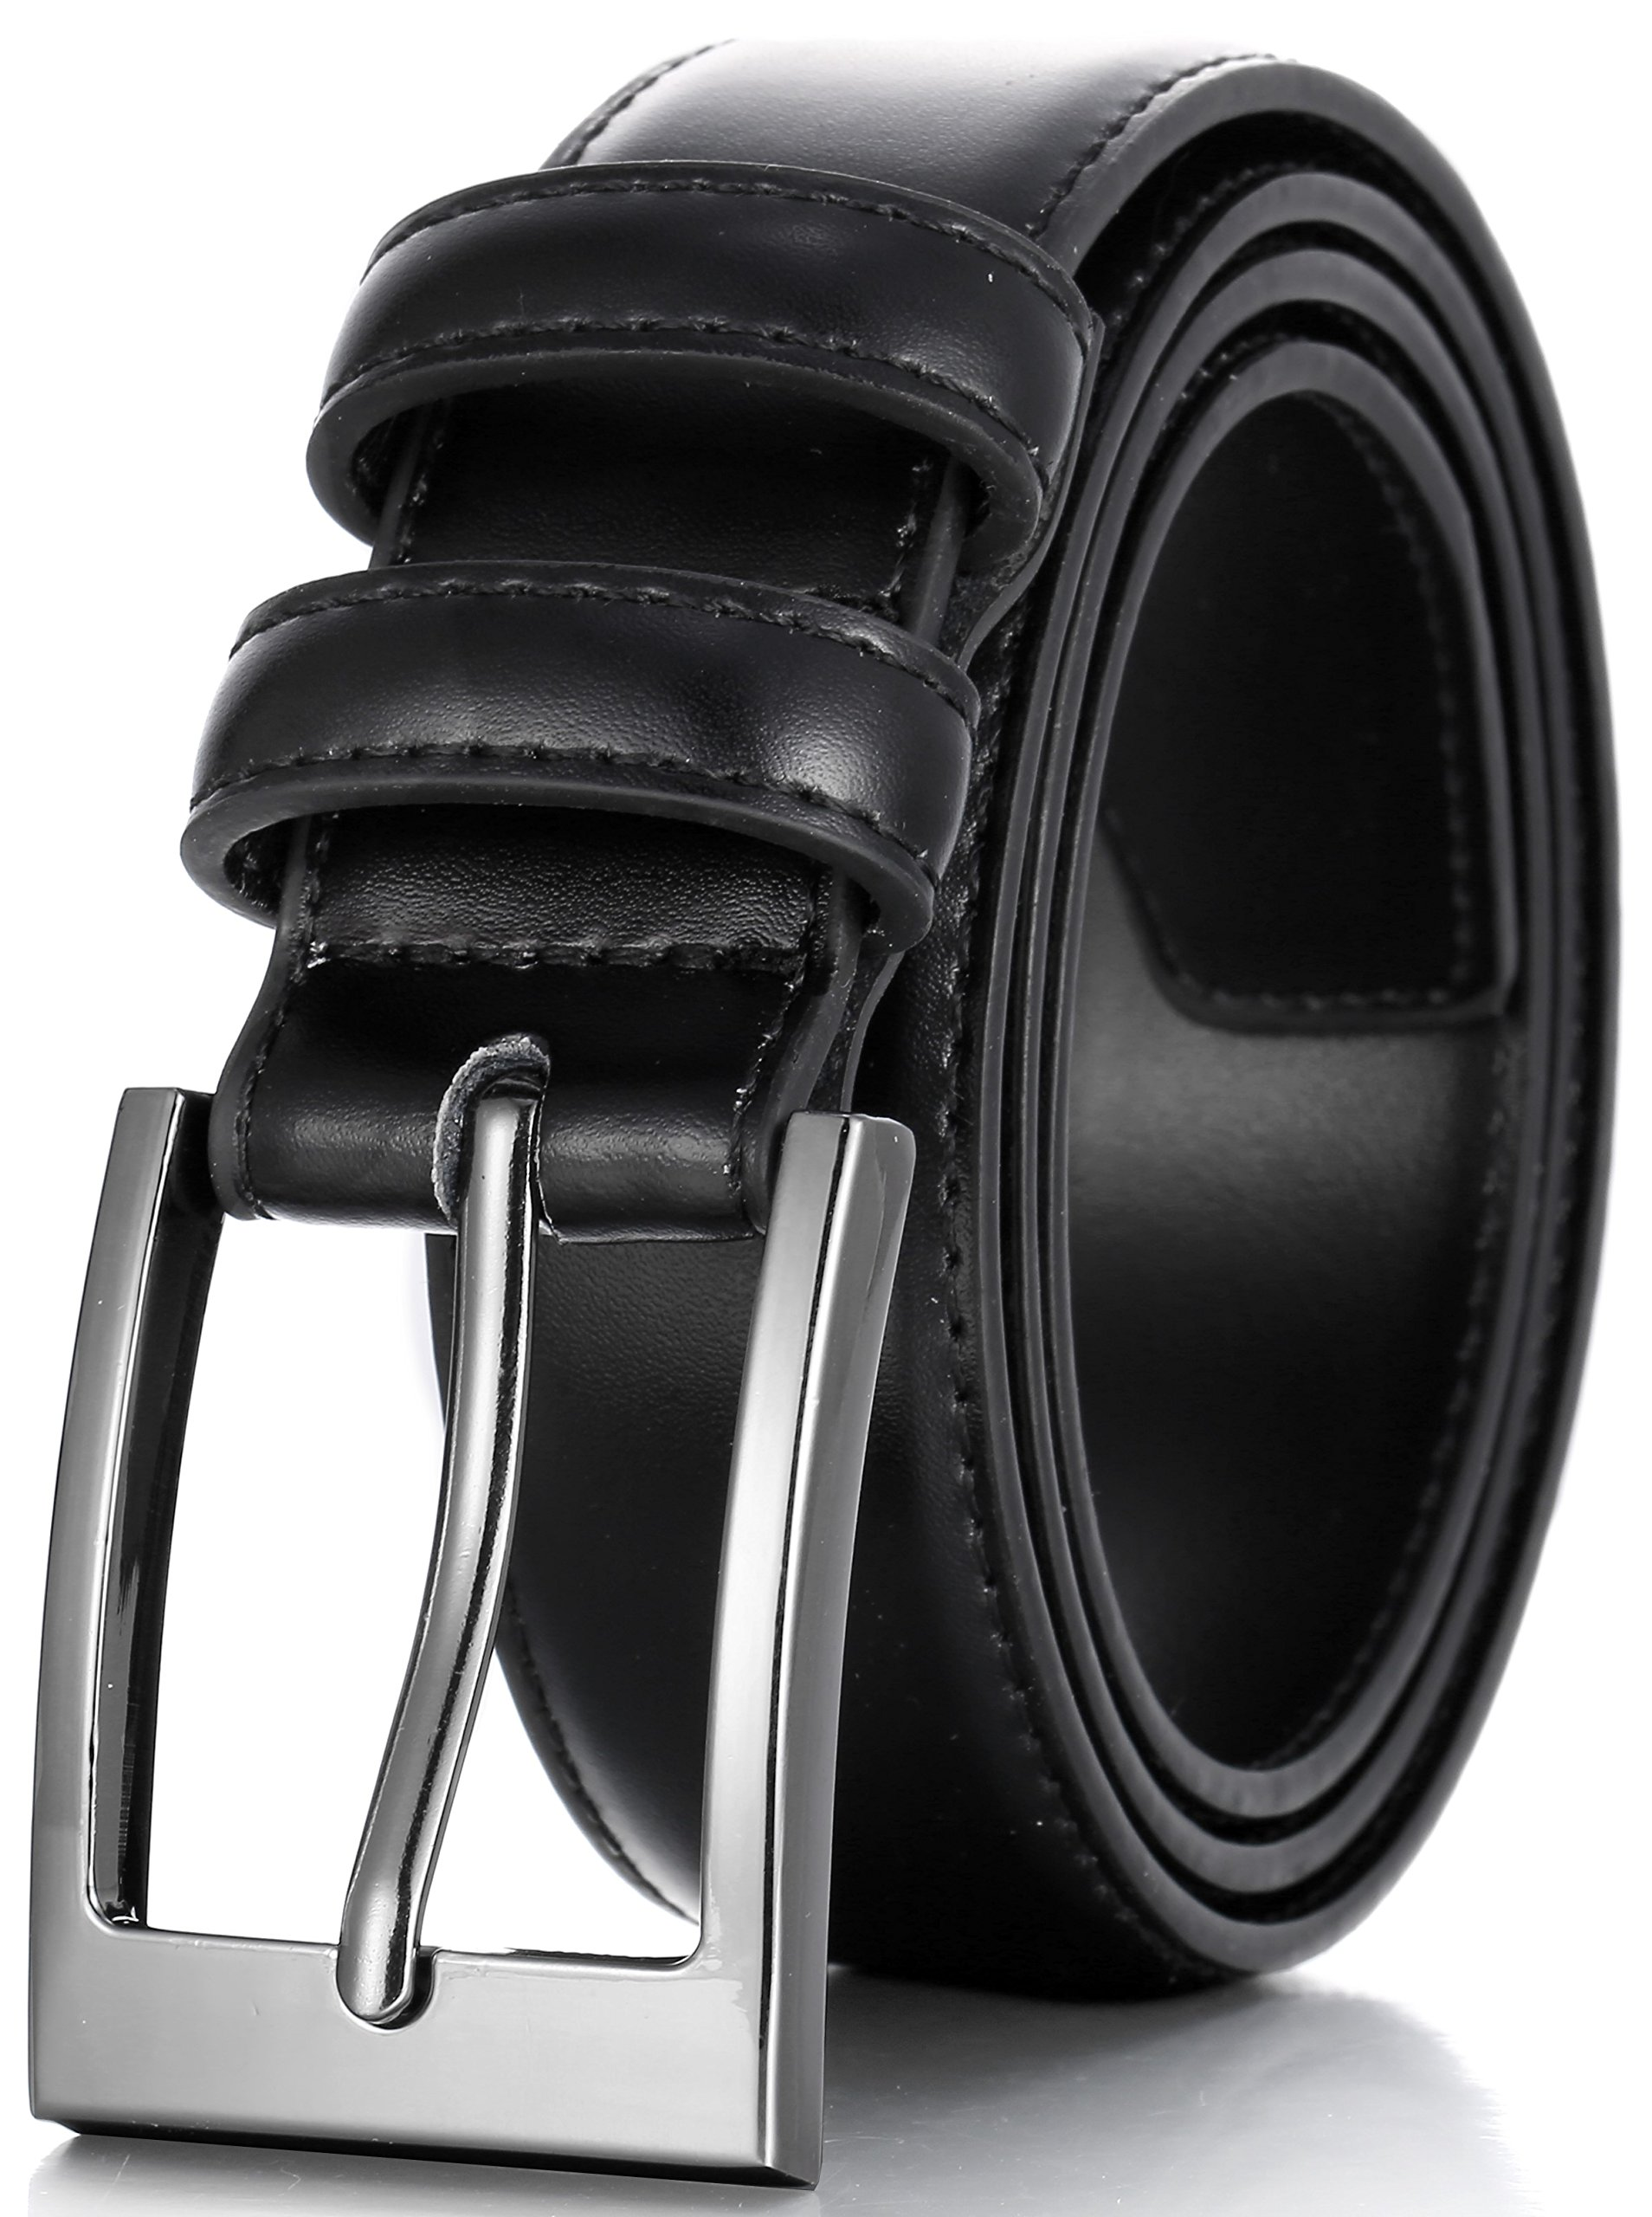 Marino's Men Genuine Leather Dress Belt with Single Prong Buckle - Black - 36